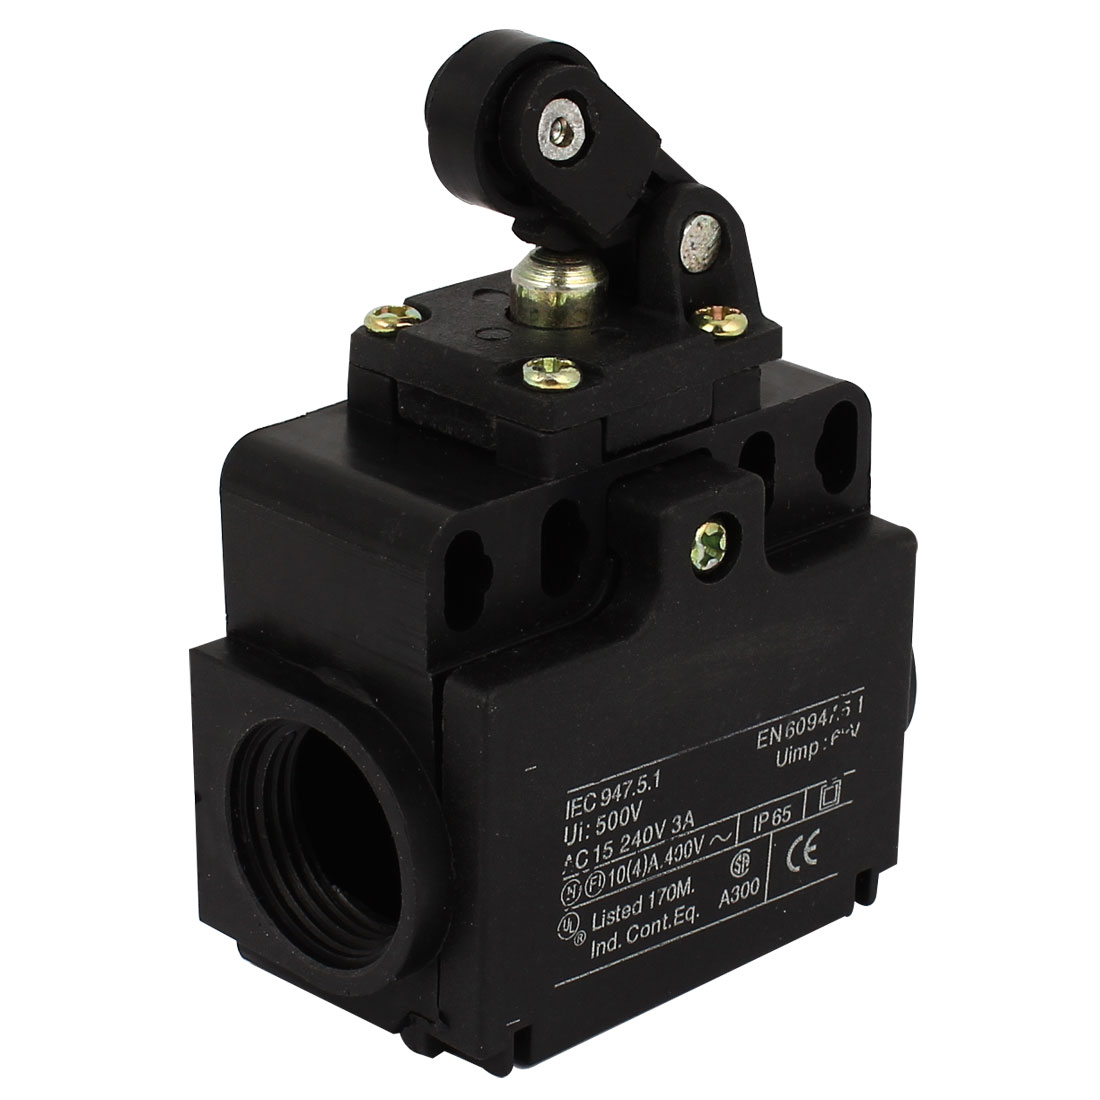 Rolling Cam NO NC Roller Plunger Limit Switch Black 240V 3A